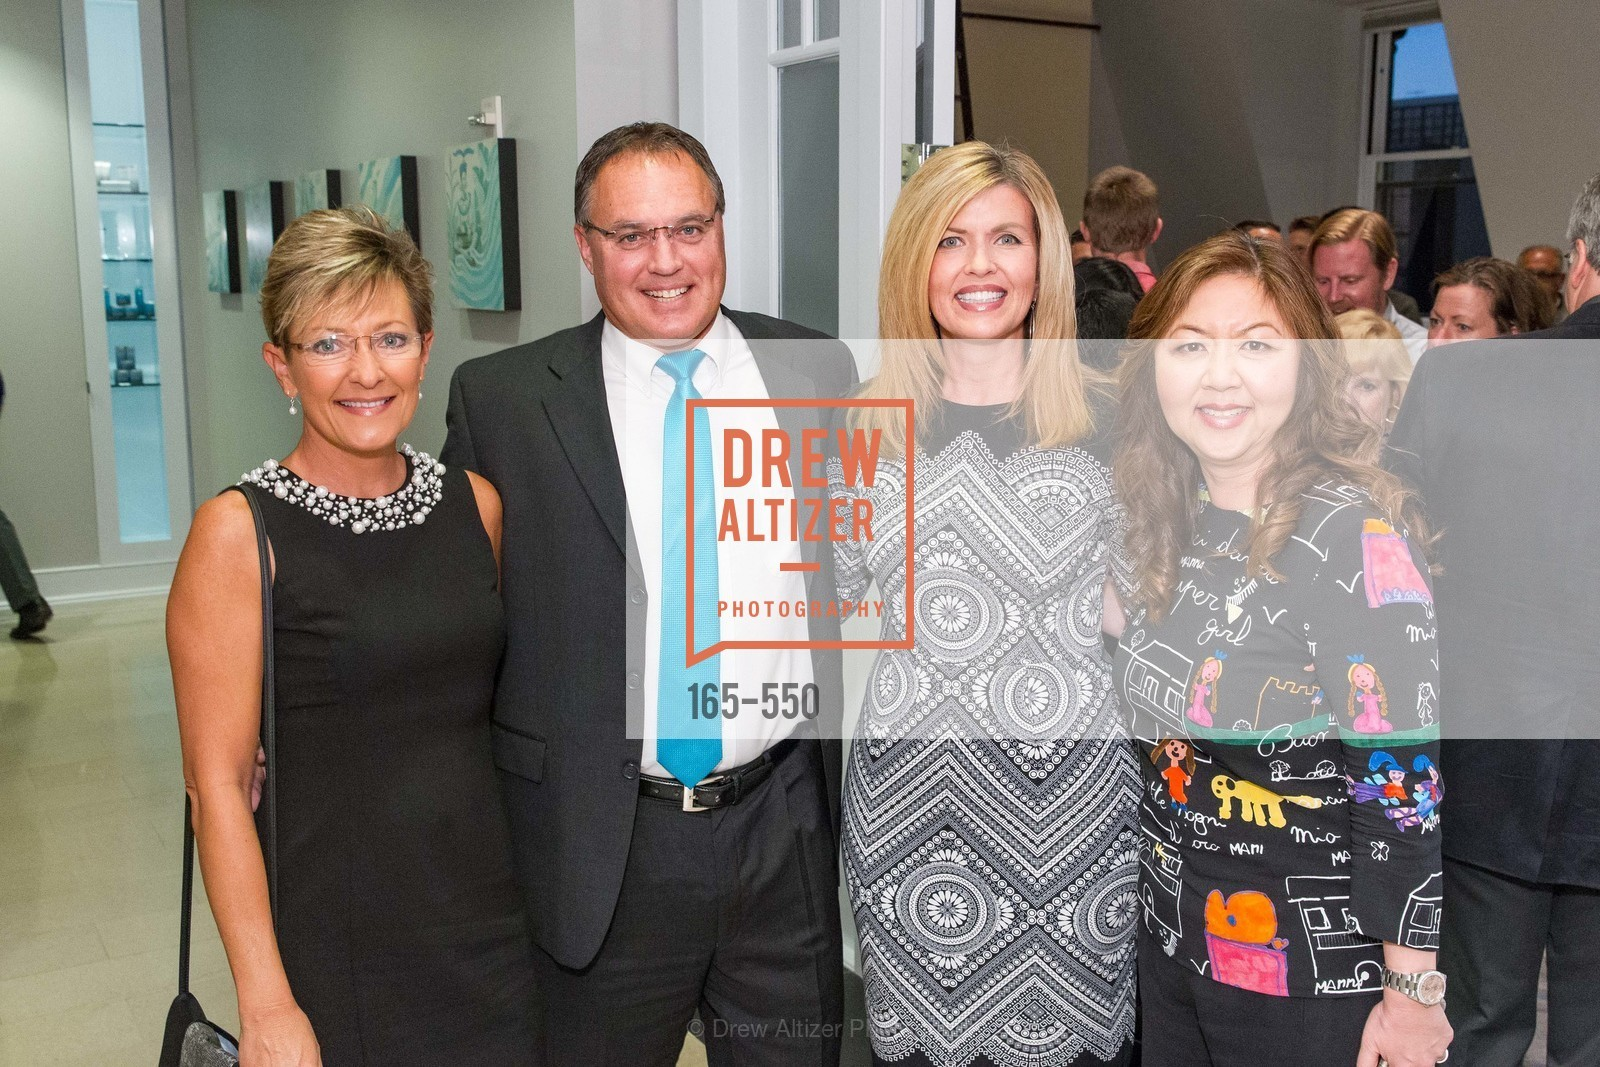 Gina McGlone, Tom, McGlone, Rita Zito, Joy Chen, H2O+ World Headquarters Opening: A New Beauty for the Bay, 111 Sutter St. 111 Sutter Street, 22nd Floor, November 18th, 2015,Drew Altizer, Drew Altizer Photography, full-service agency, private events, San Francisco photographer, photographer california